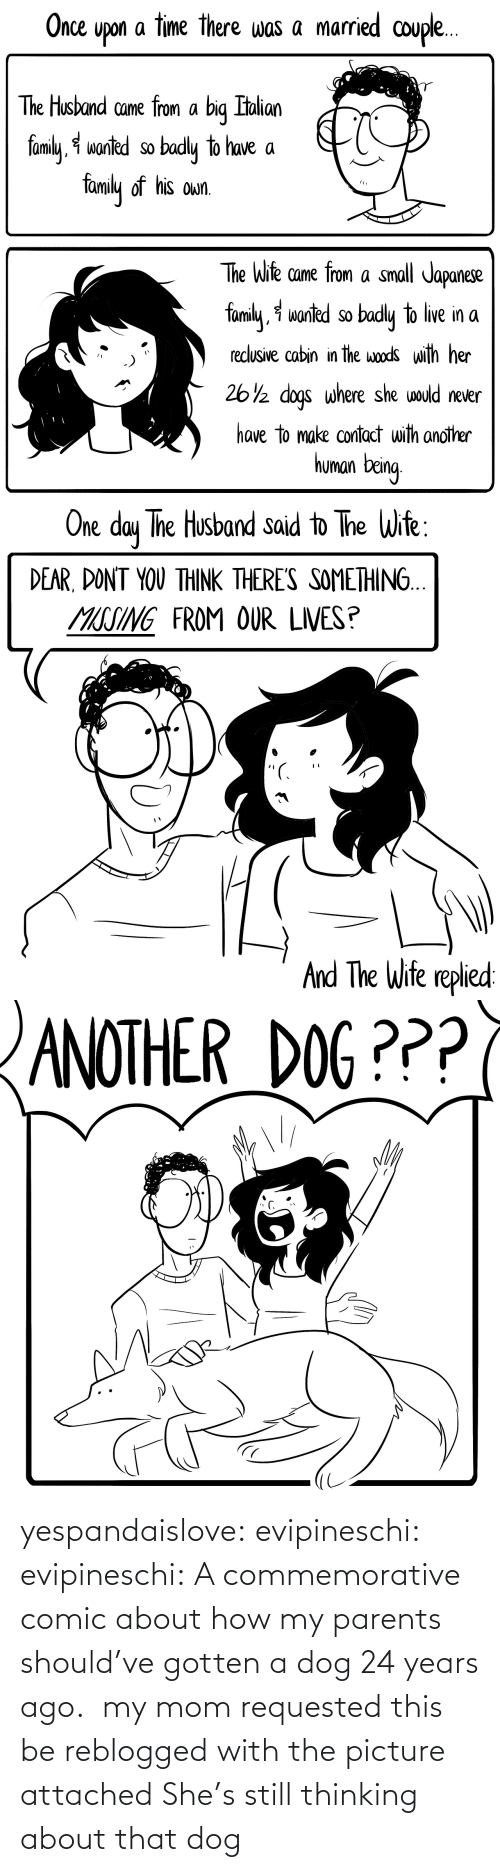 thinking: yespandaislove: evipineschi:  evipineschi: A commemorative comic about how my parents should've gotten a dog 24 years ago.  my mom requested this be reblogged with the picture attached   She's still thinking about that dog